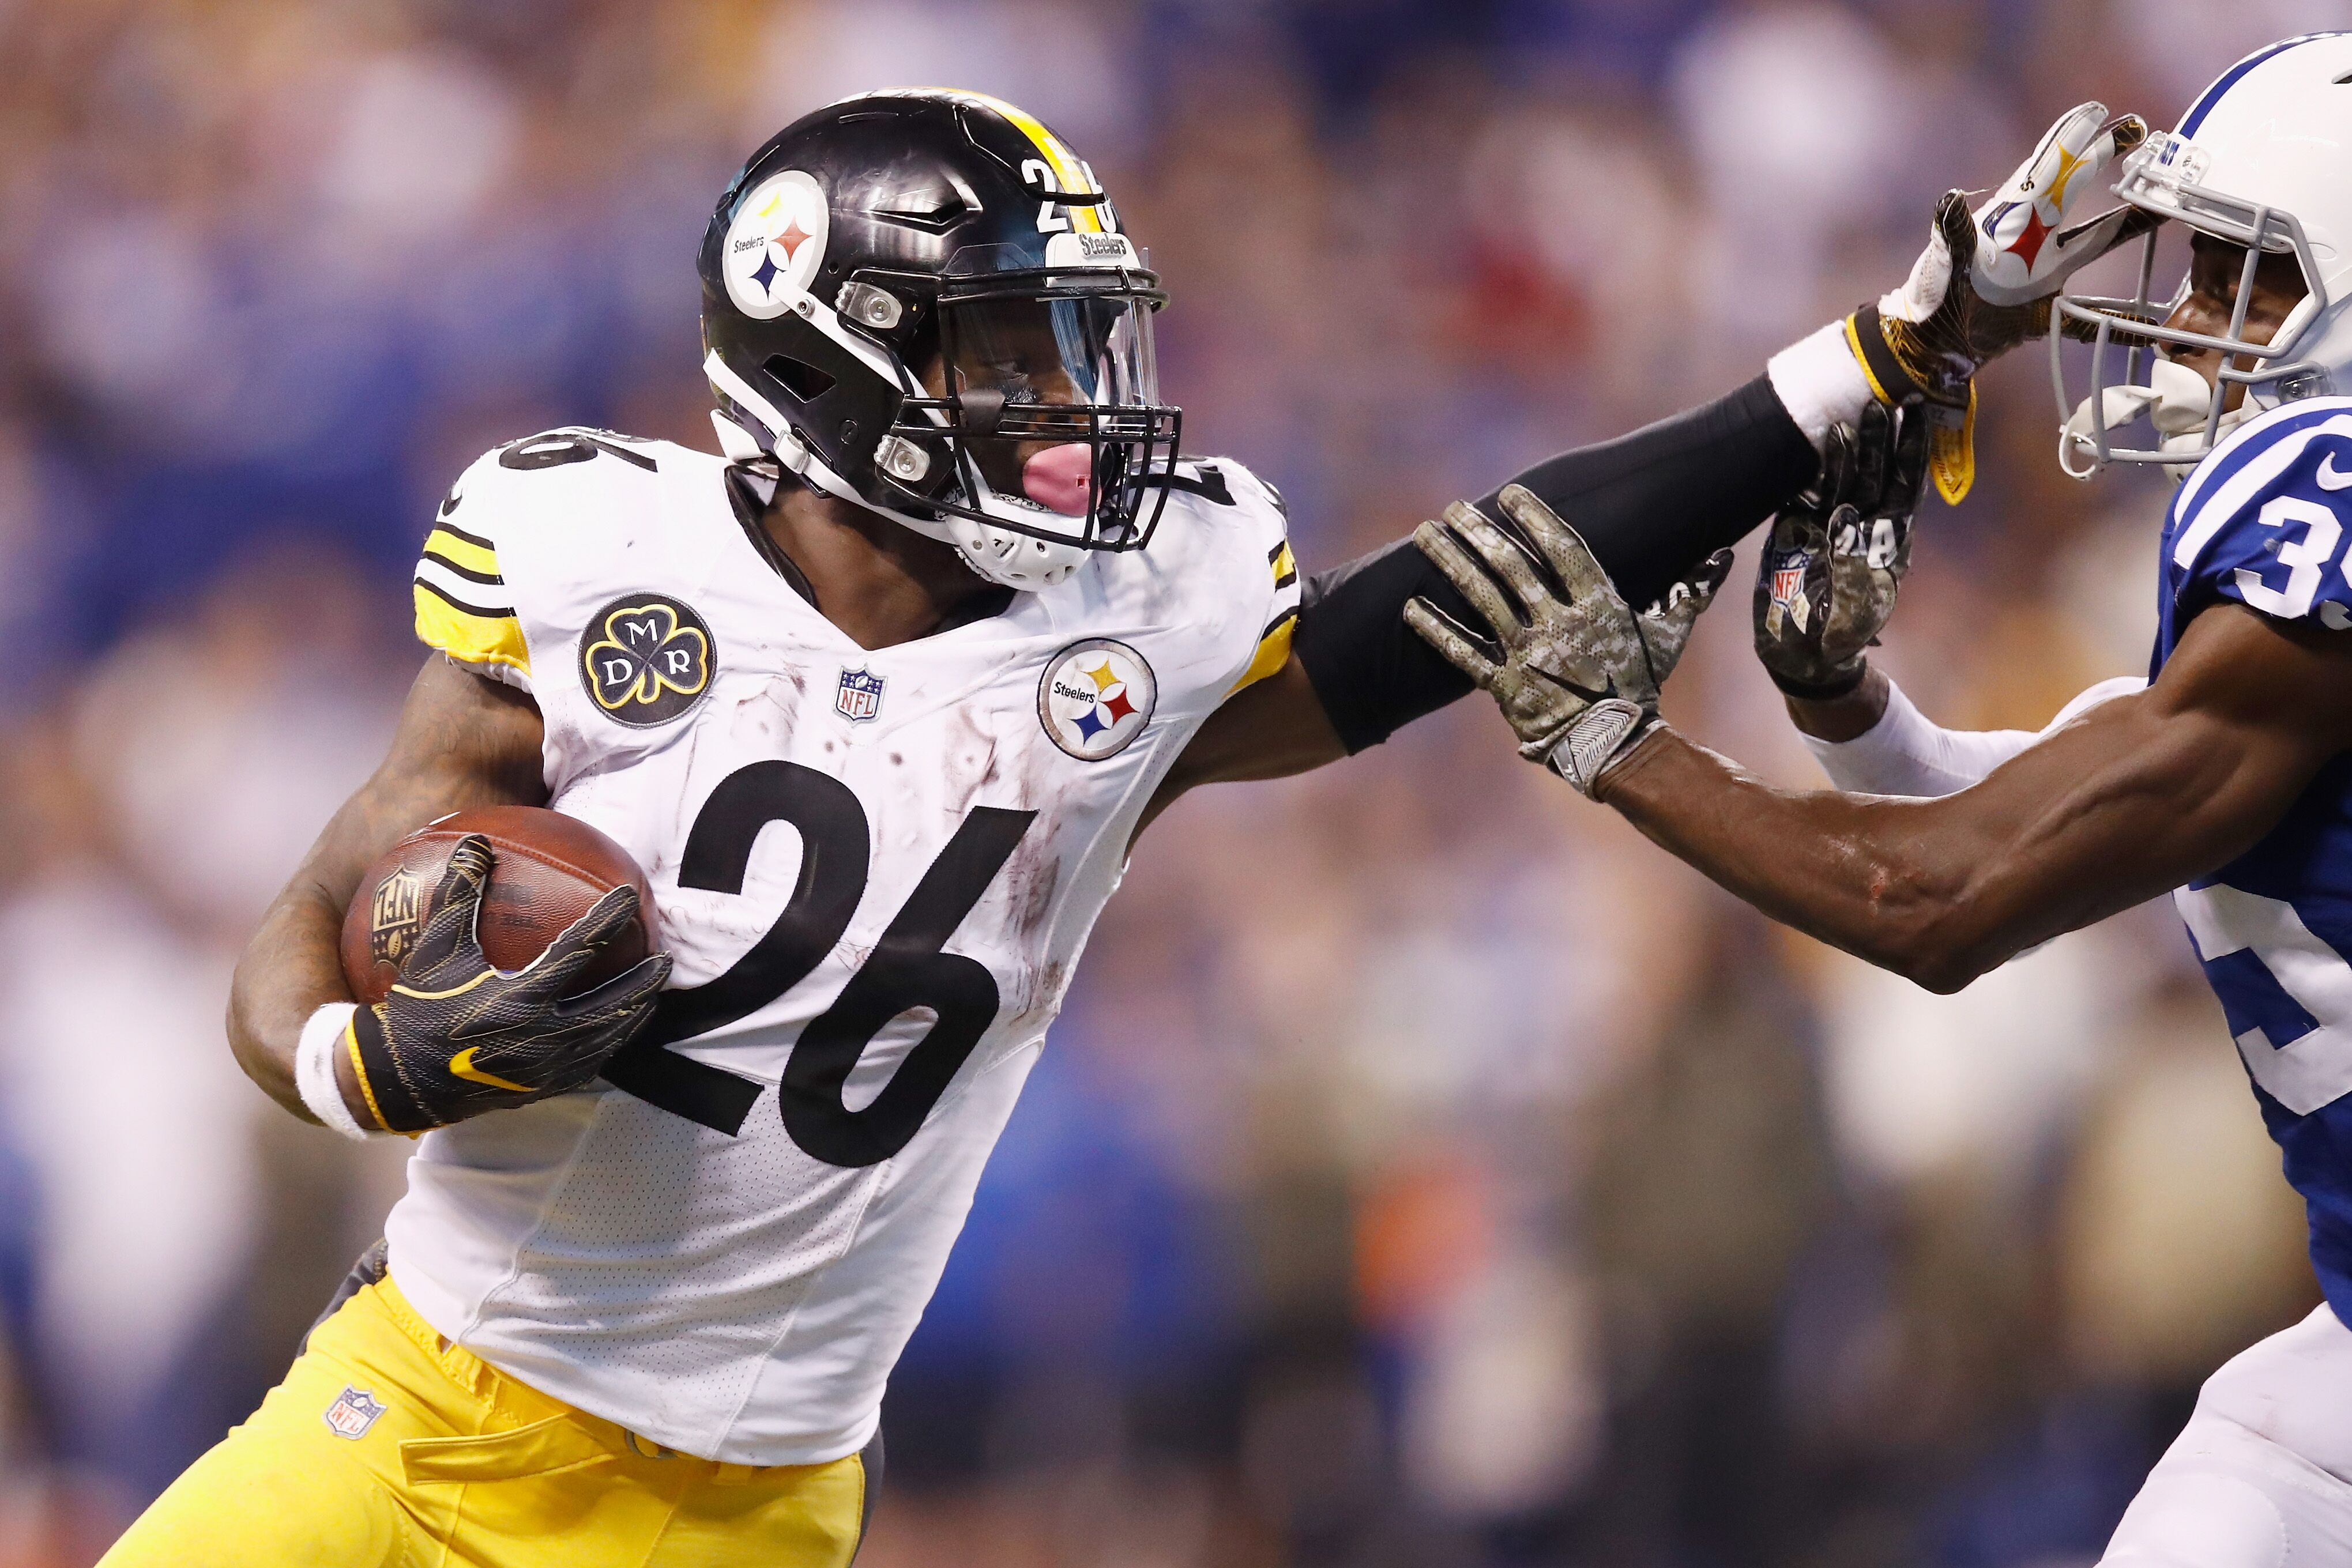 873353486-pittsburgh-steelers-v-indianapolis-colts.jpg